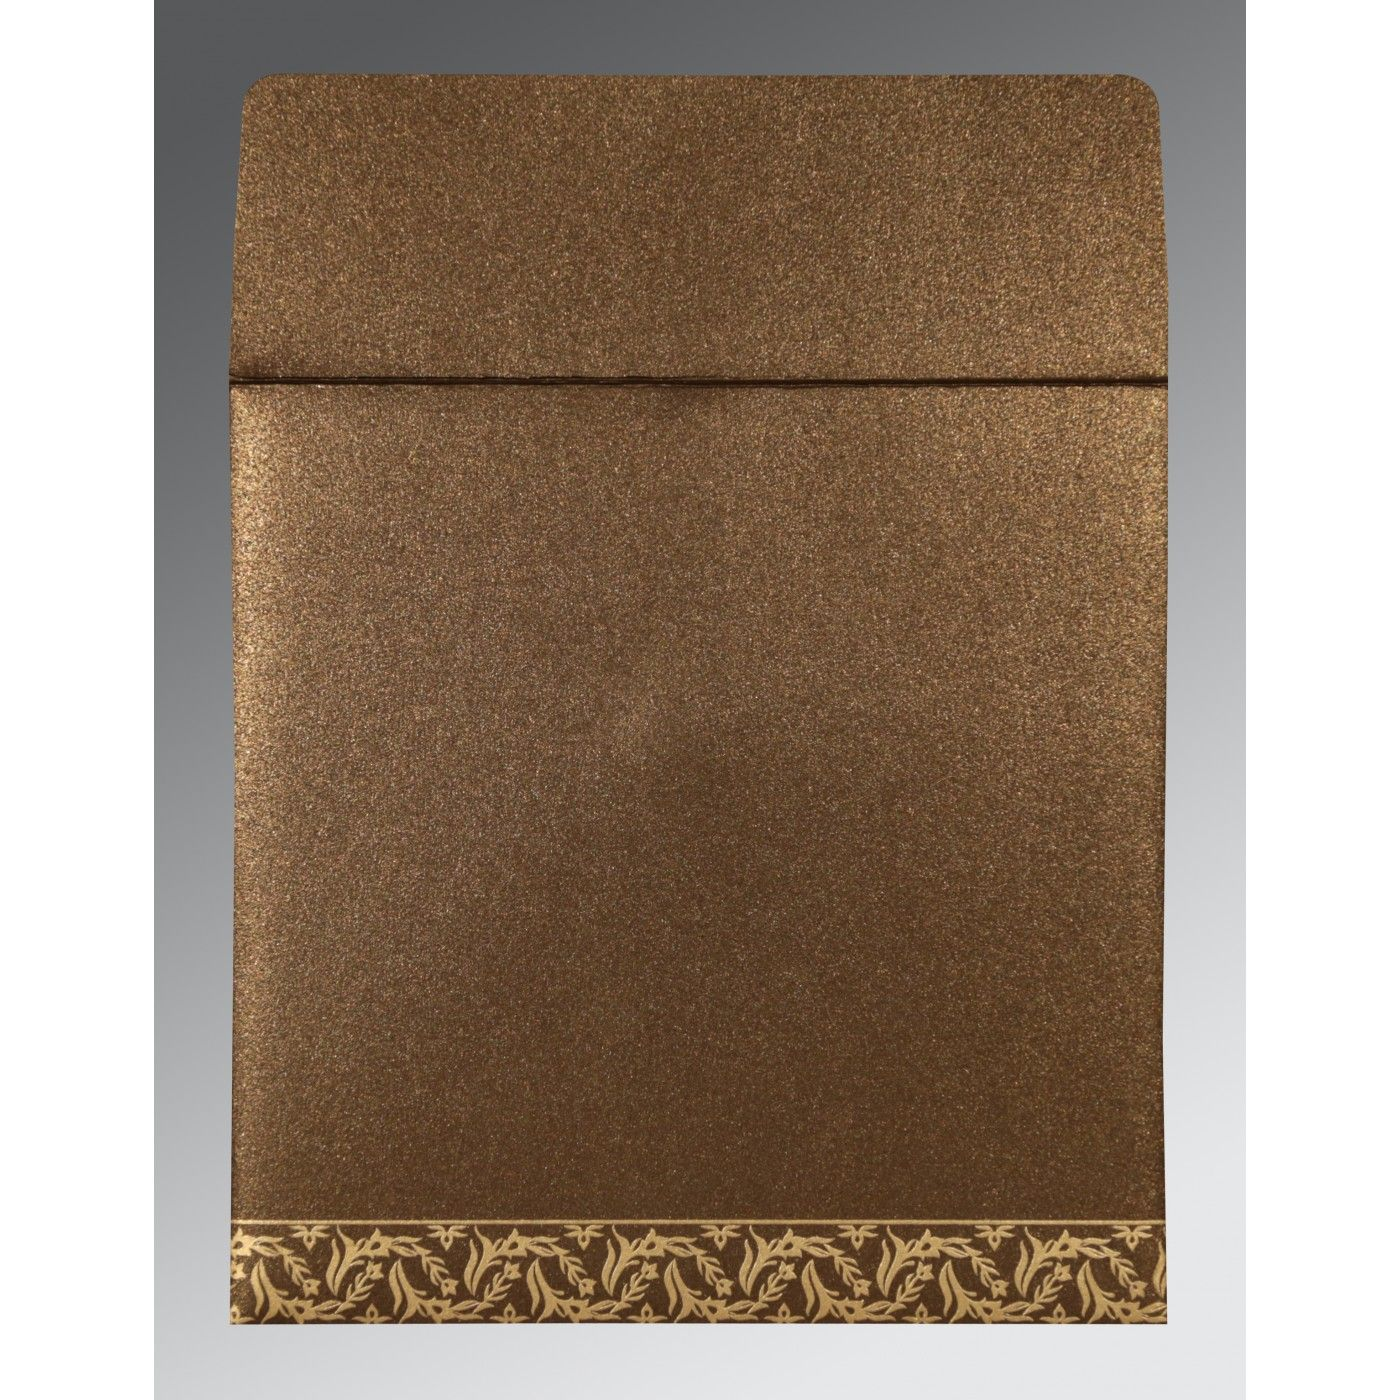 BROWN SHIMMERY UNIQUE THEMED - FOIL STAMPED WEDDING CARD : CW-8249J - IndianWeddingCards